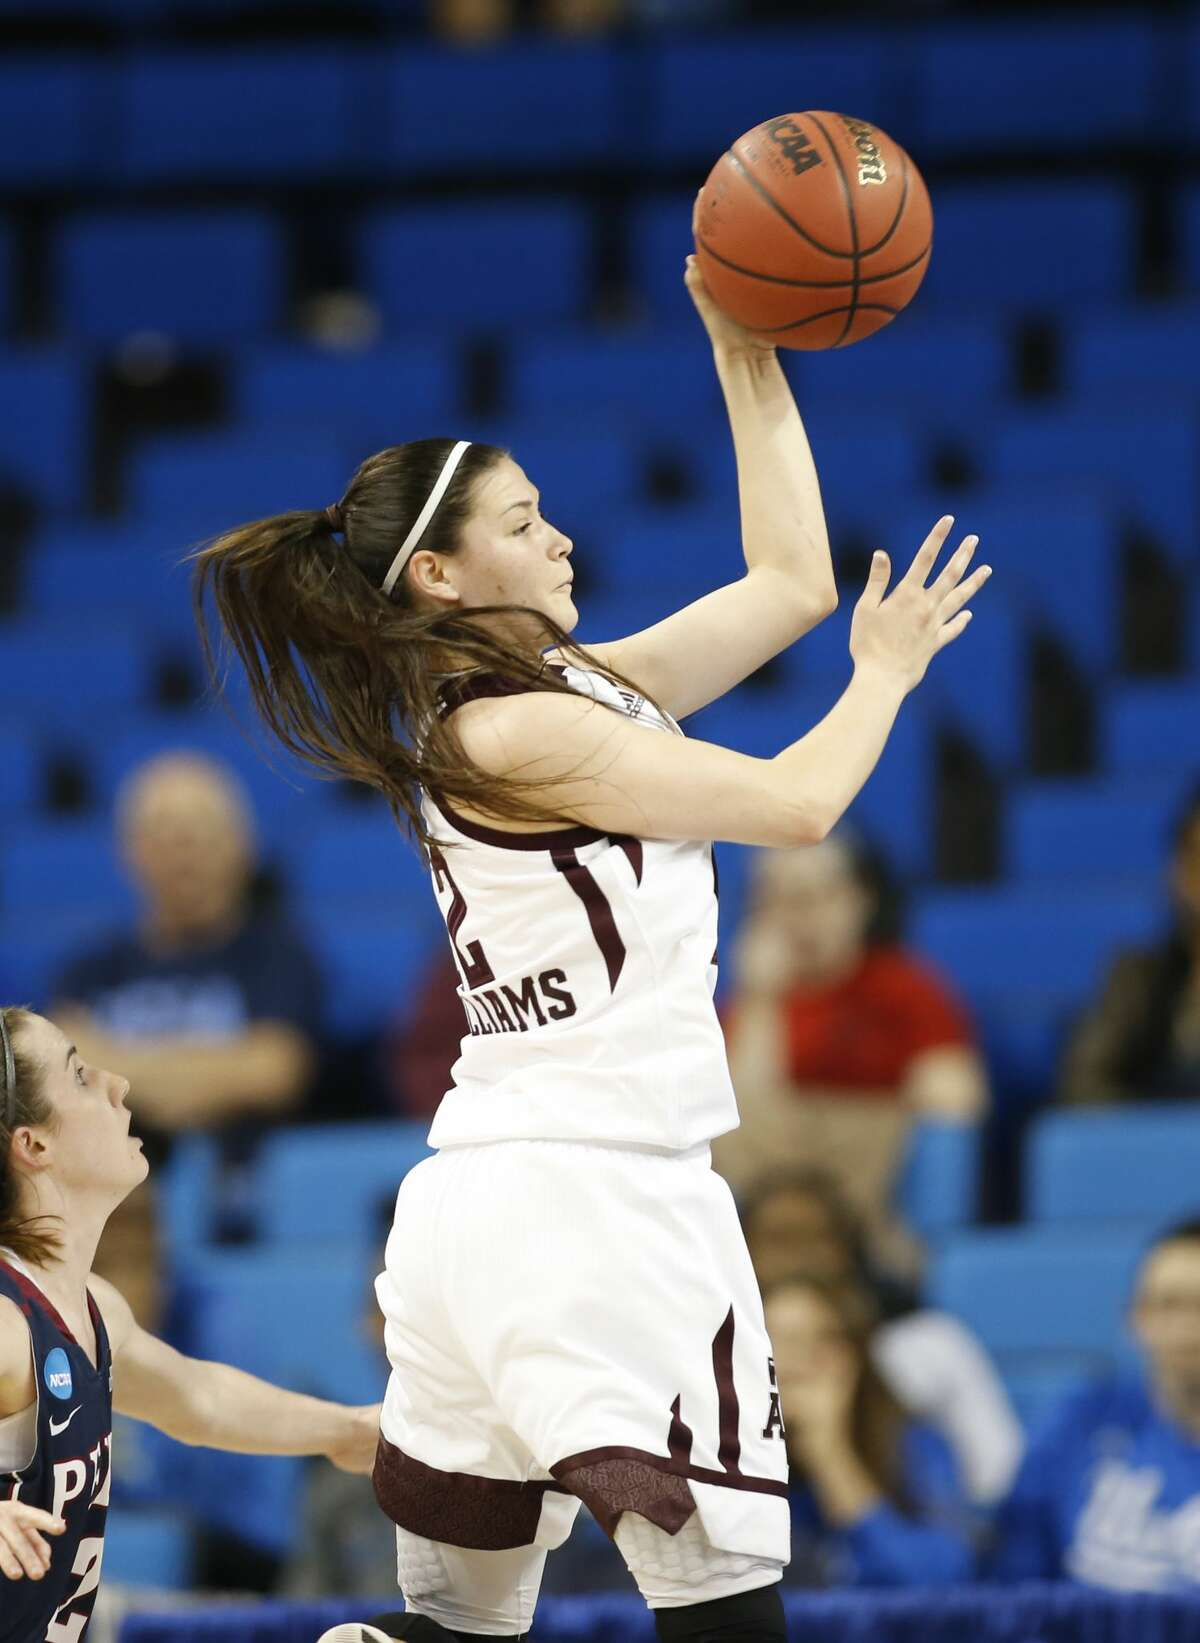 Texas A&M guard Danni Williams passes the ball against Penn during the first half of a first-round game in the NCAA women's college basketball tournament, Saturday, March 18, 2017, in Los Angeles. (AP Photo/Danny Moloshok)